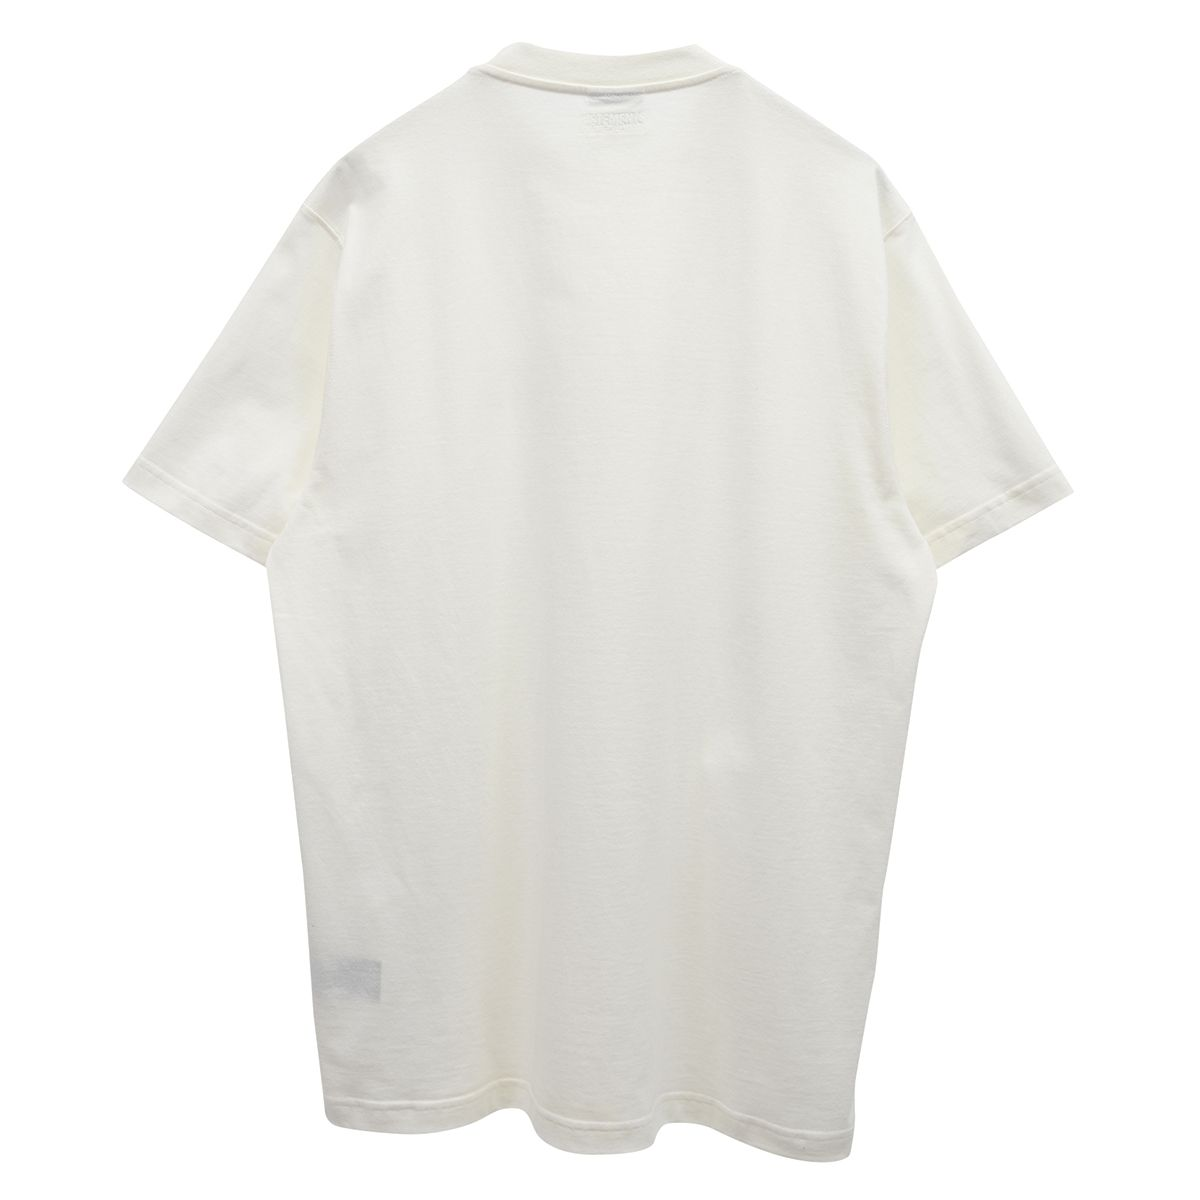 VETEMENTS THINK DIFFERENTLY LOGO T-SHIRT / WHITE